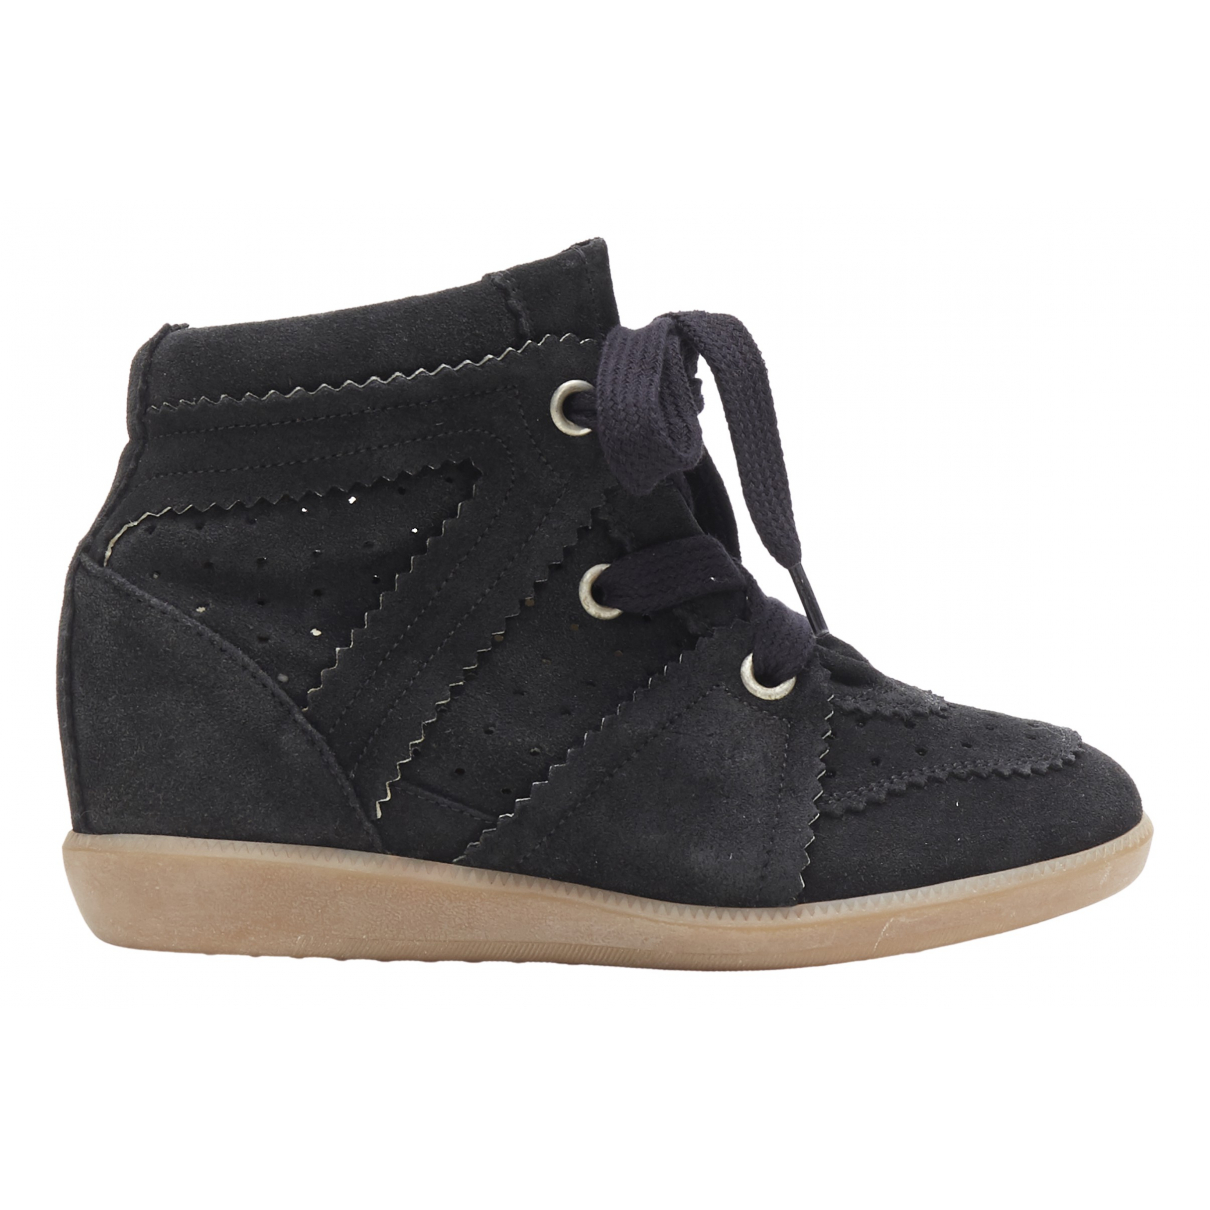 Isabel Marant Betty Black Suede Trainers for Women 37 EU